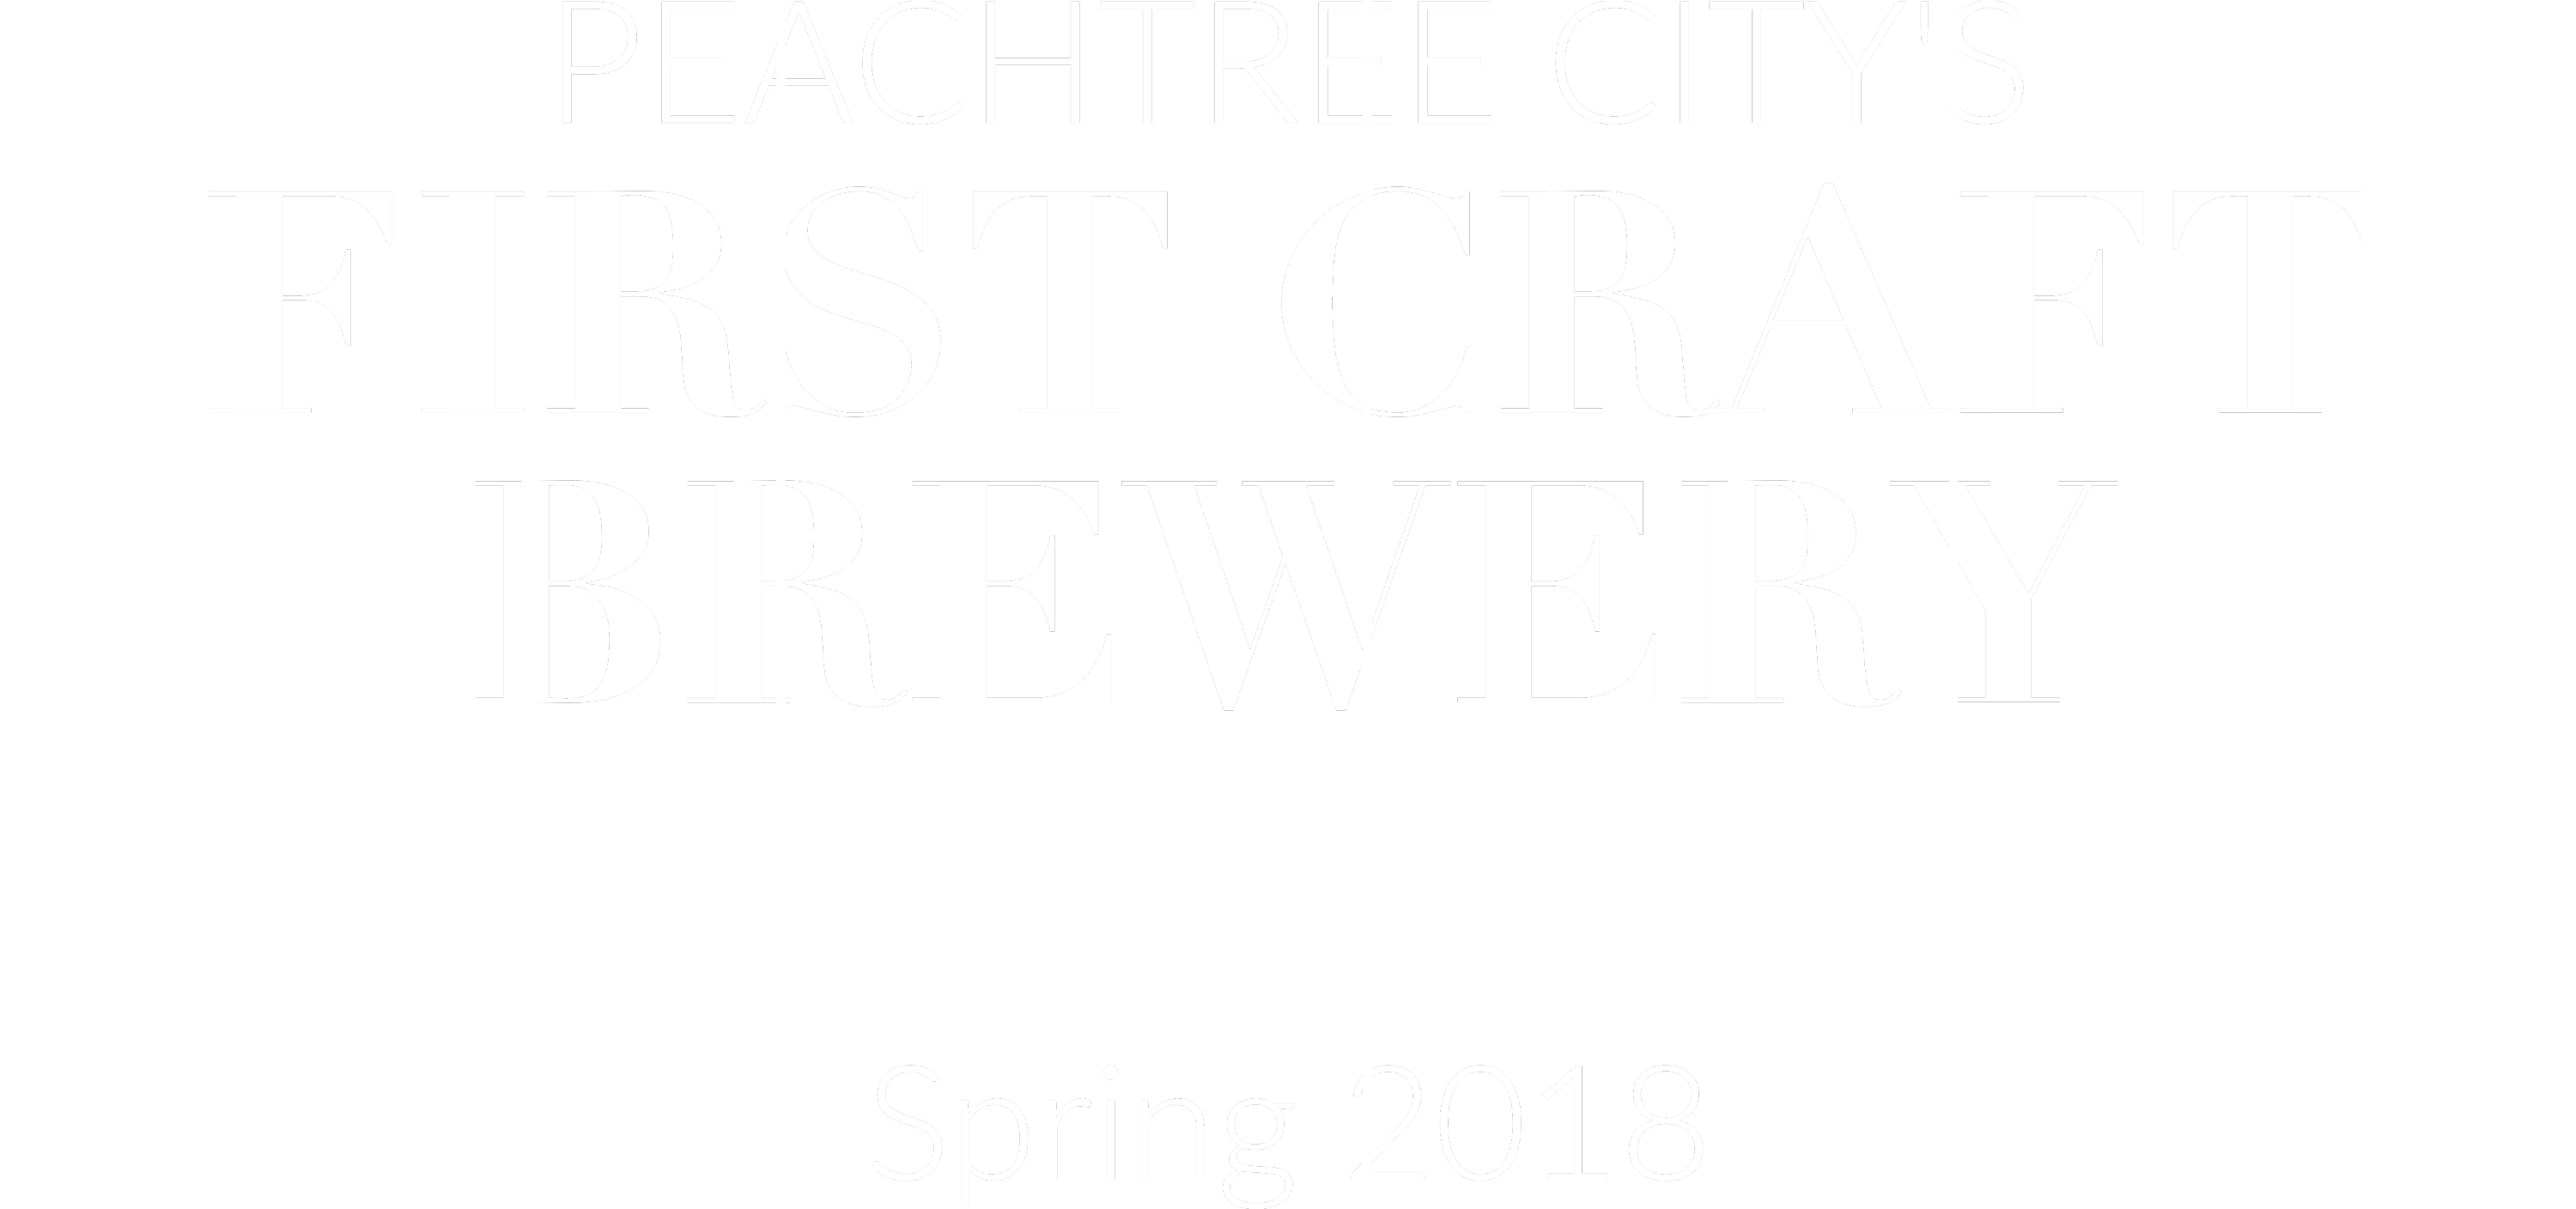 https://linecreekbrewing.com/wp-content/uploads/2017/09/peachtree-city-first-brewery-1.png